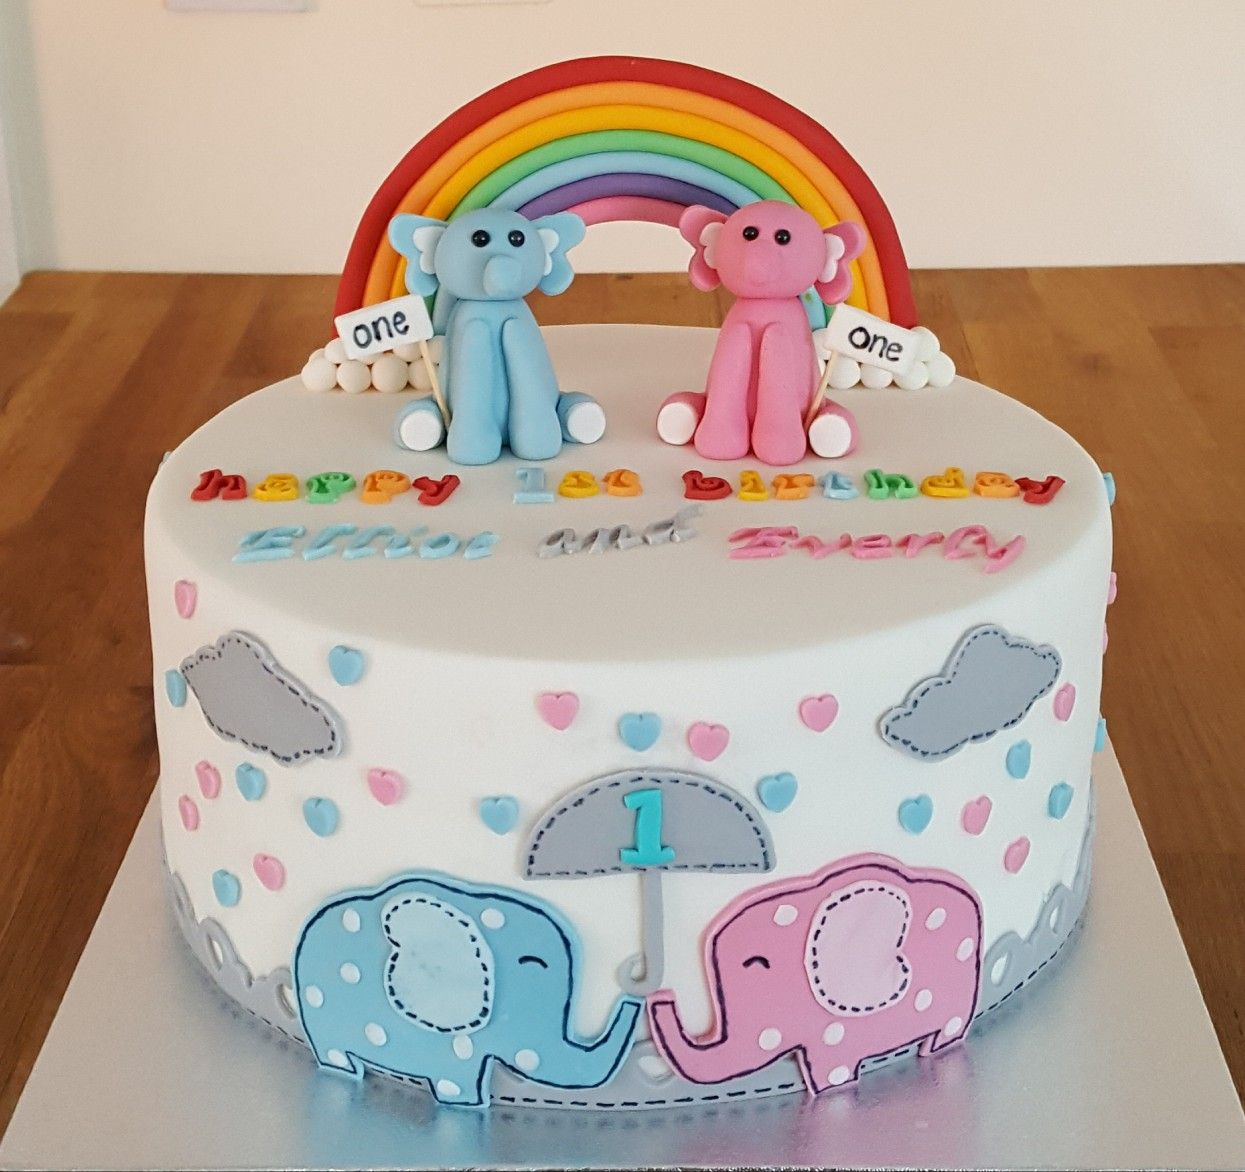 Remarkable 1St Birthday Cake For Twins Boy Girl With Elephant Rainbow Funny Birthday Cards Online Unhofree Goldxyz